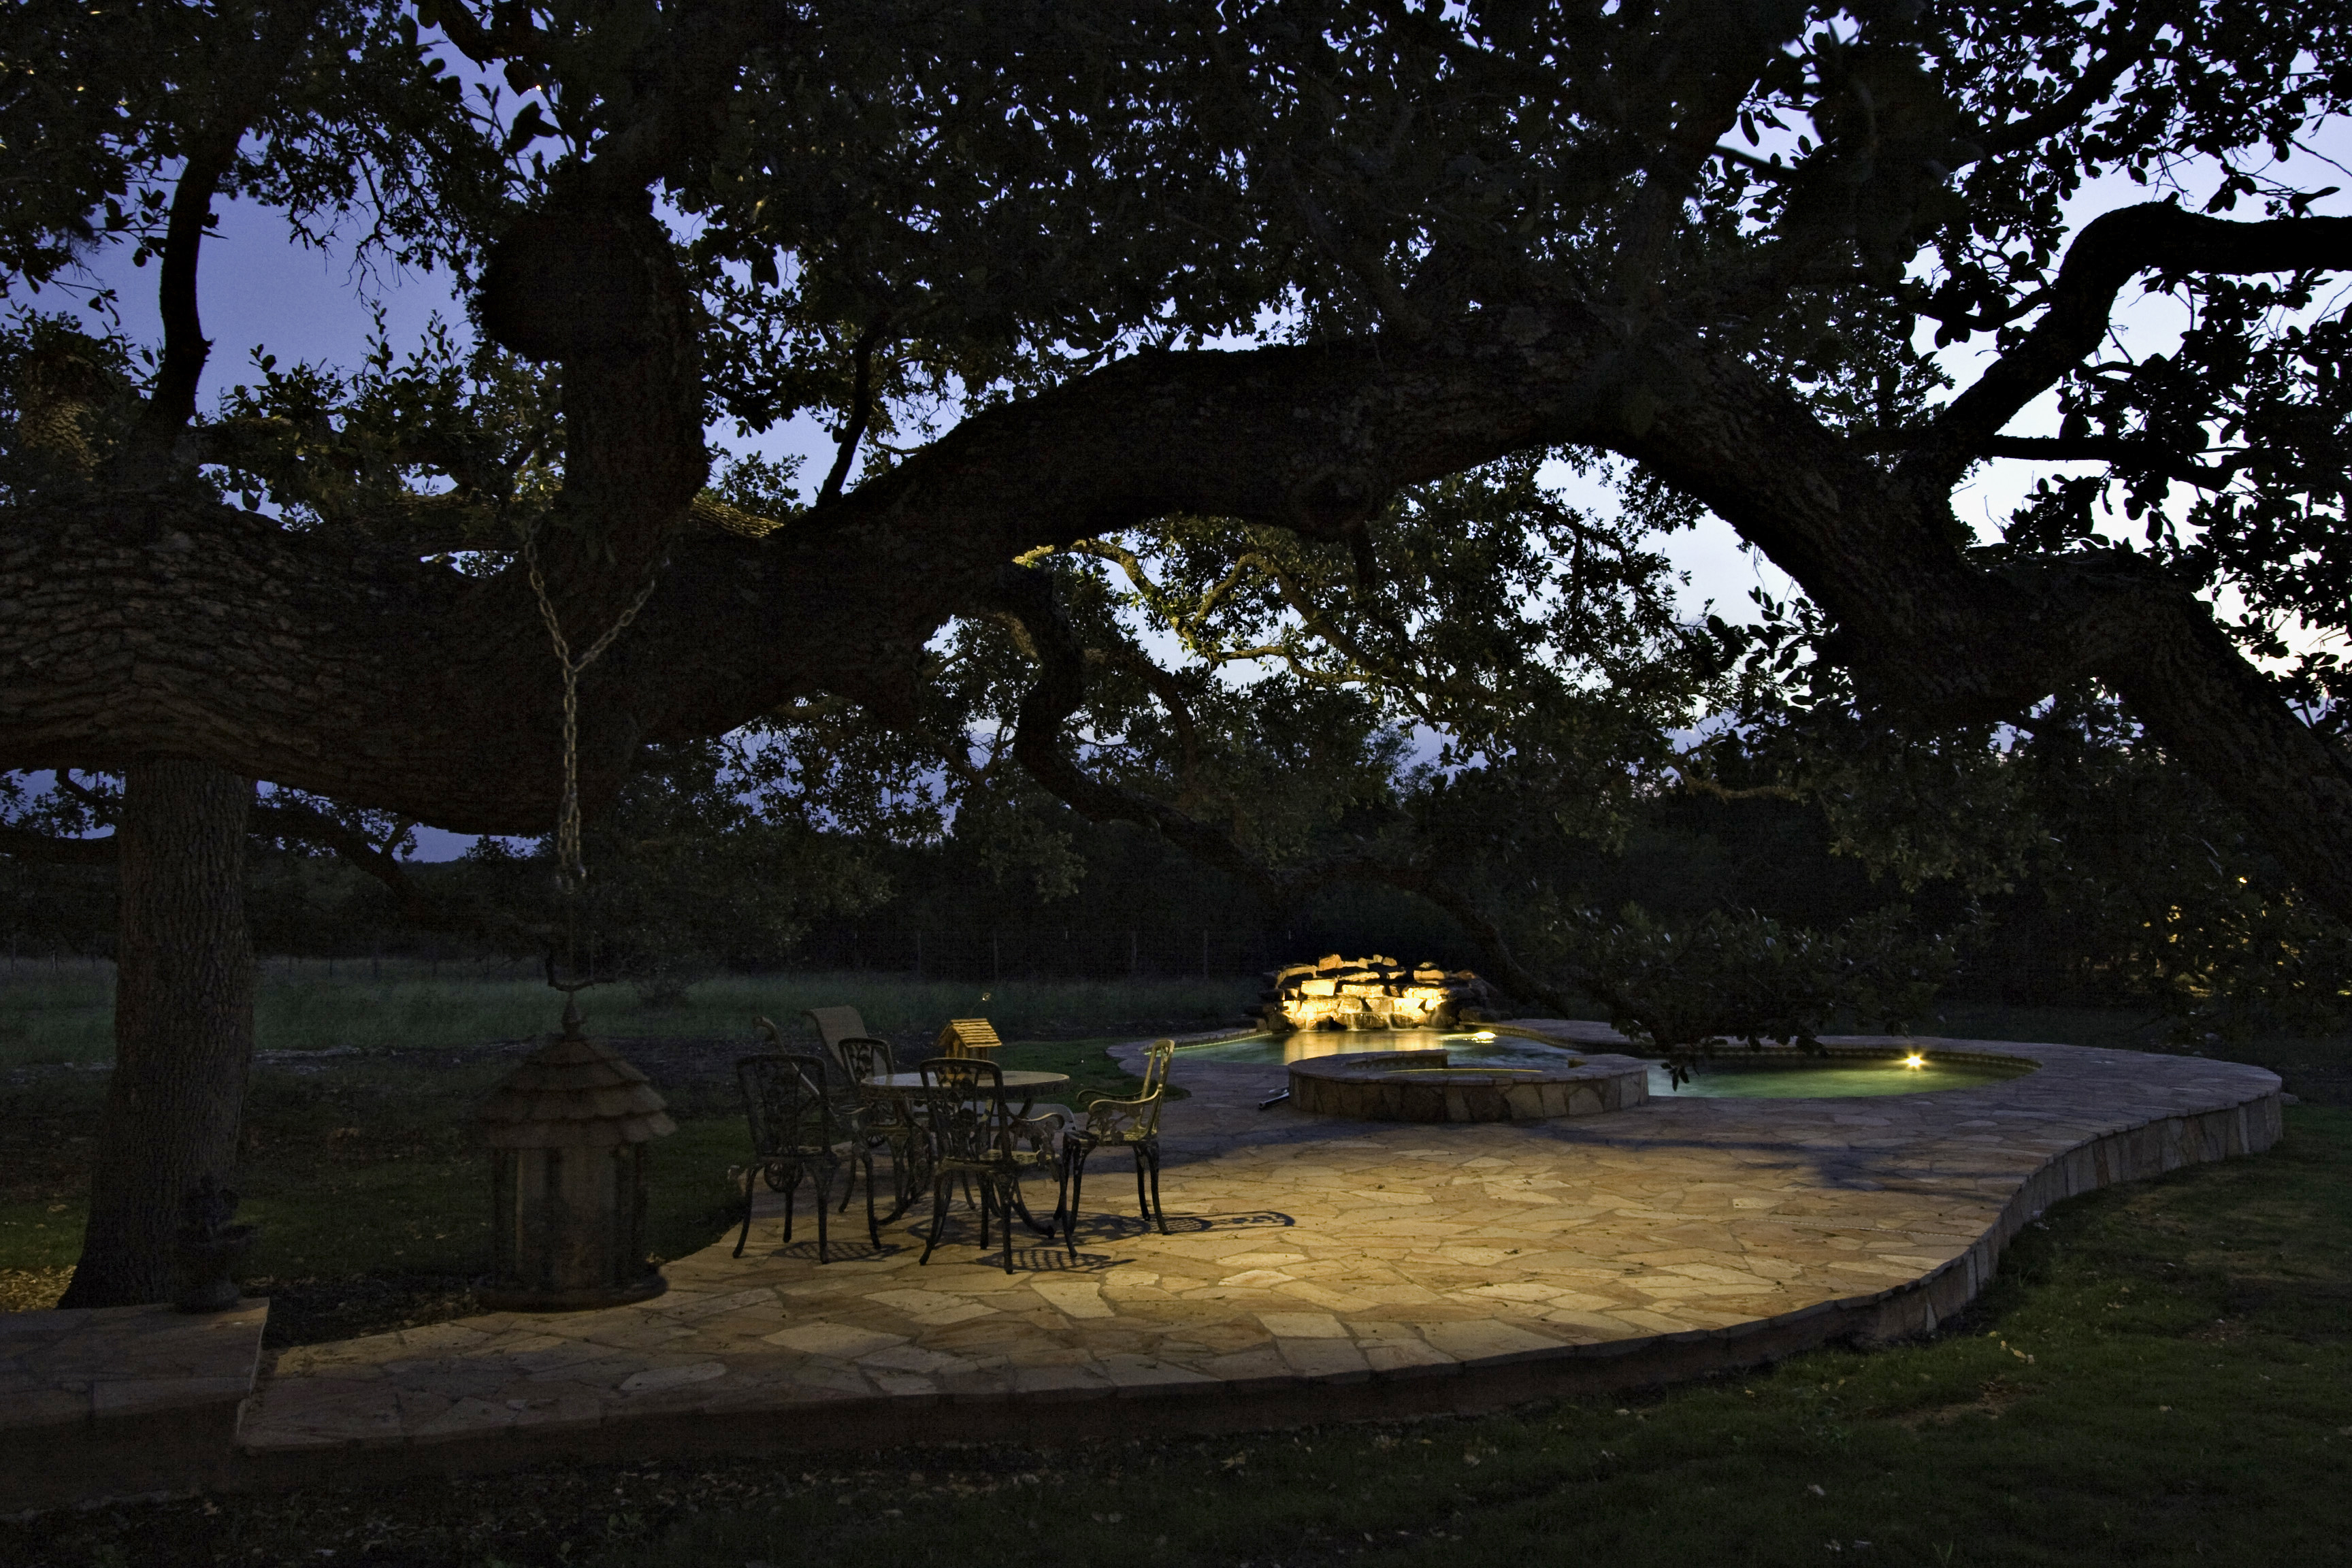 Outdoor Lighting creates a relaxing setting and lets you enjoy more time outdoors